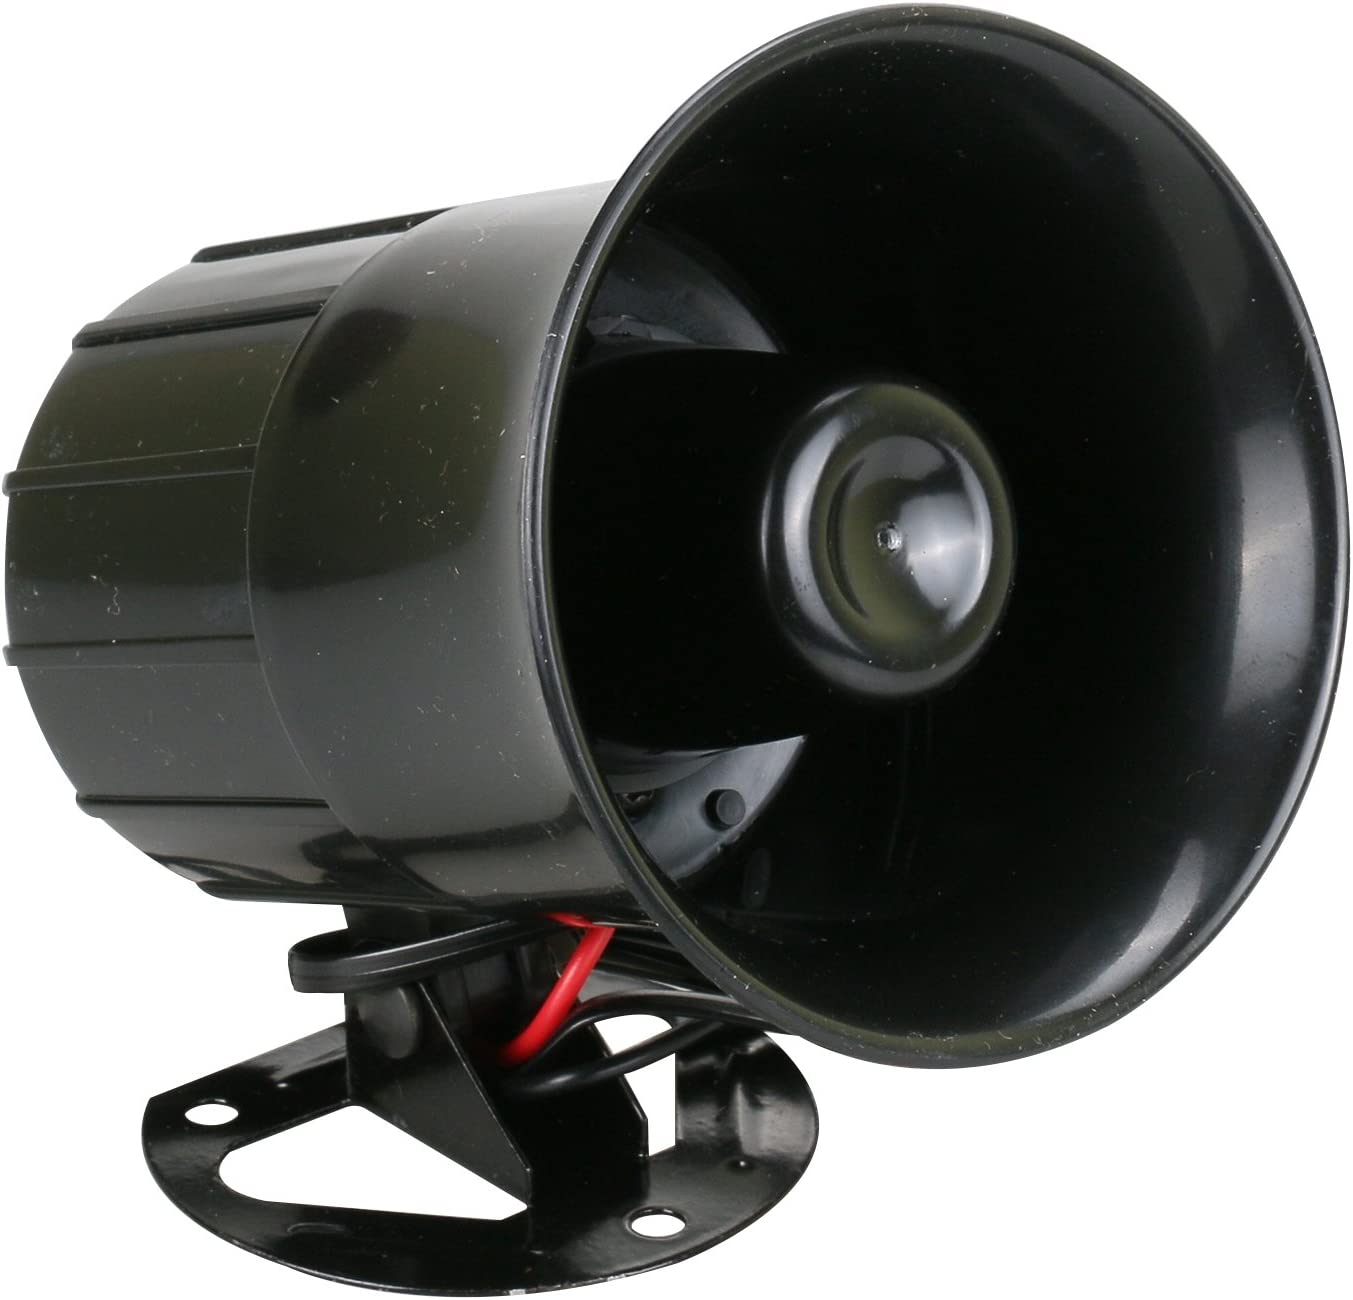 30W Home Security System Alarm Siren,Emergency with Wired Annunciator Horn Sound System for Home Security Protection